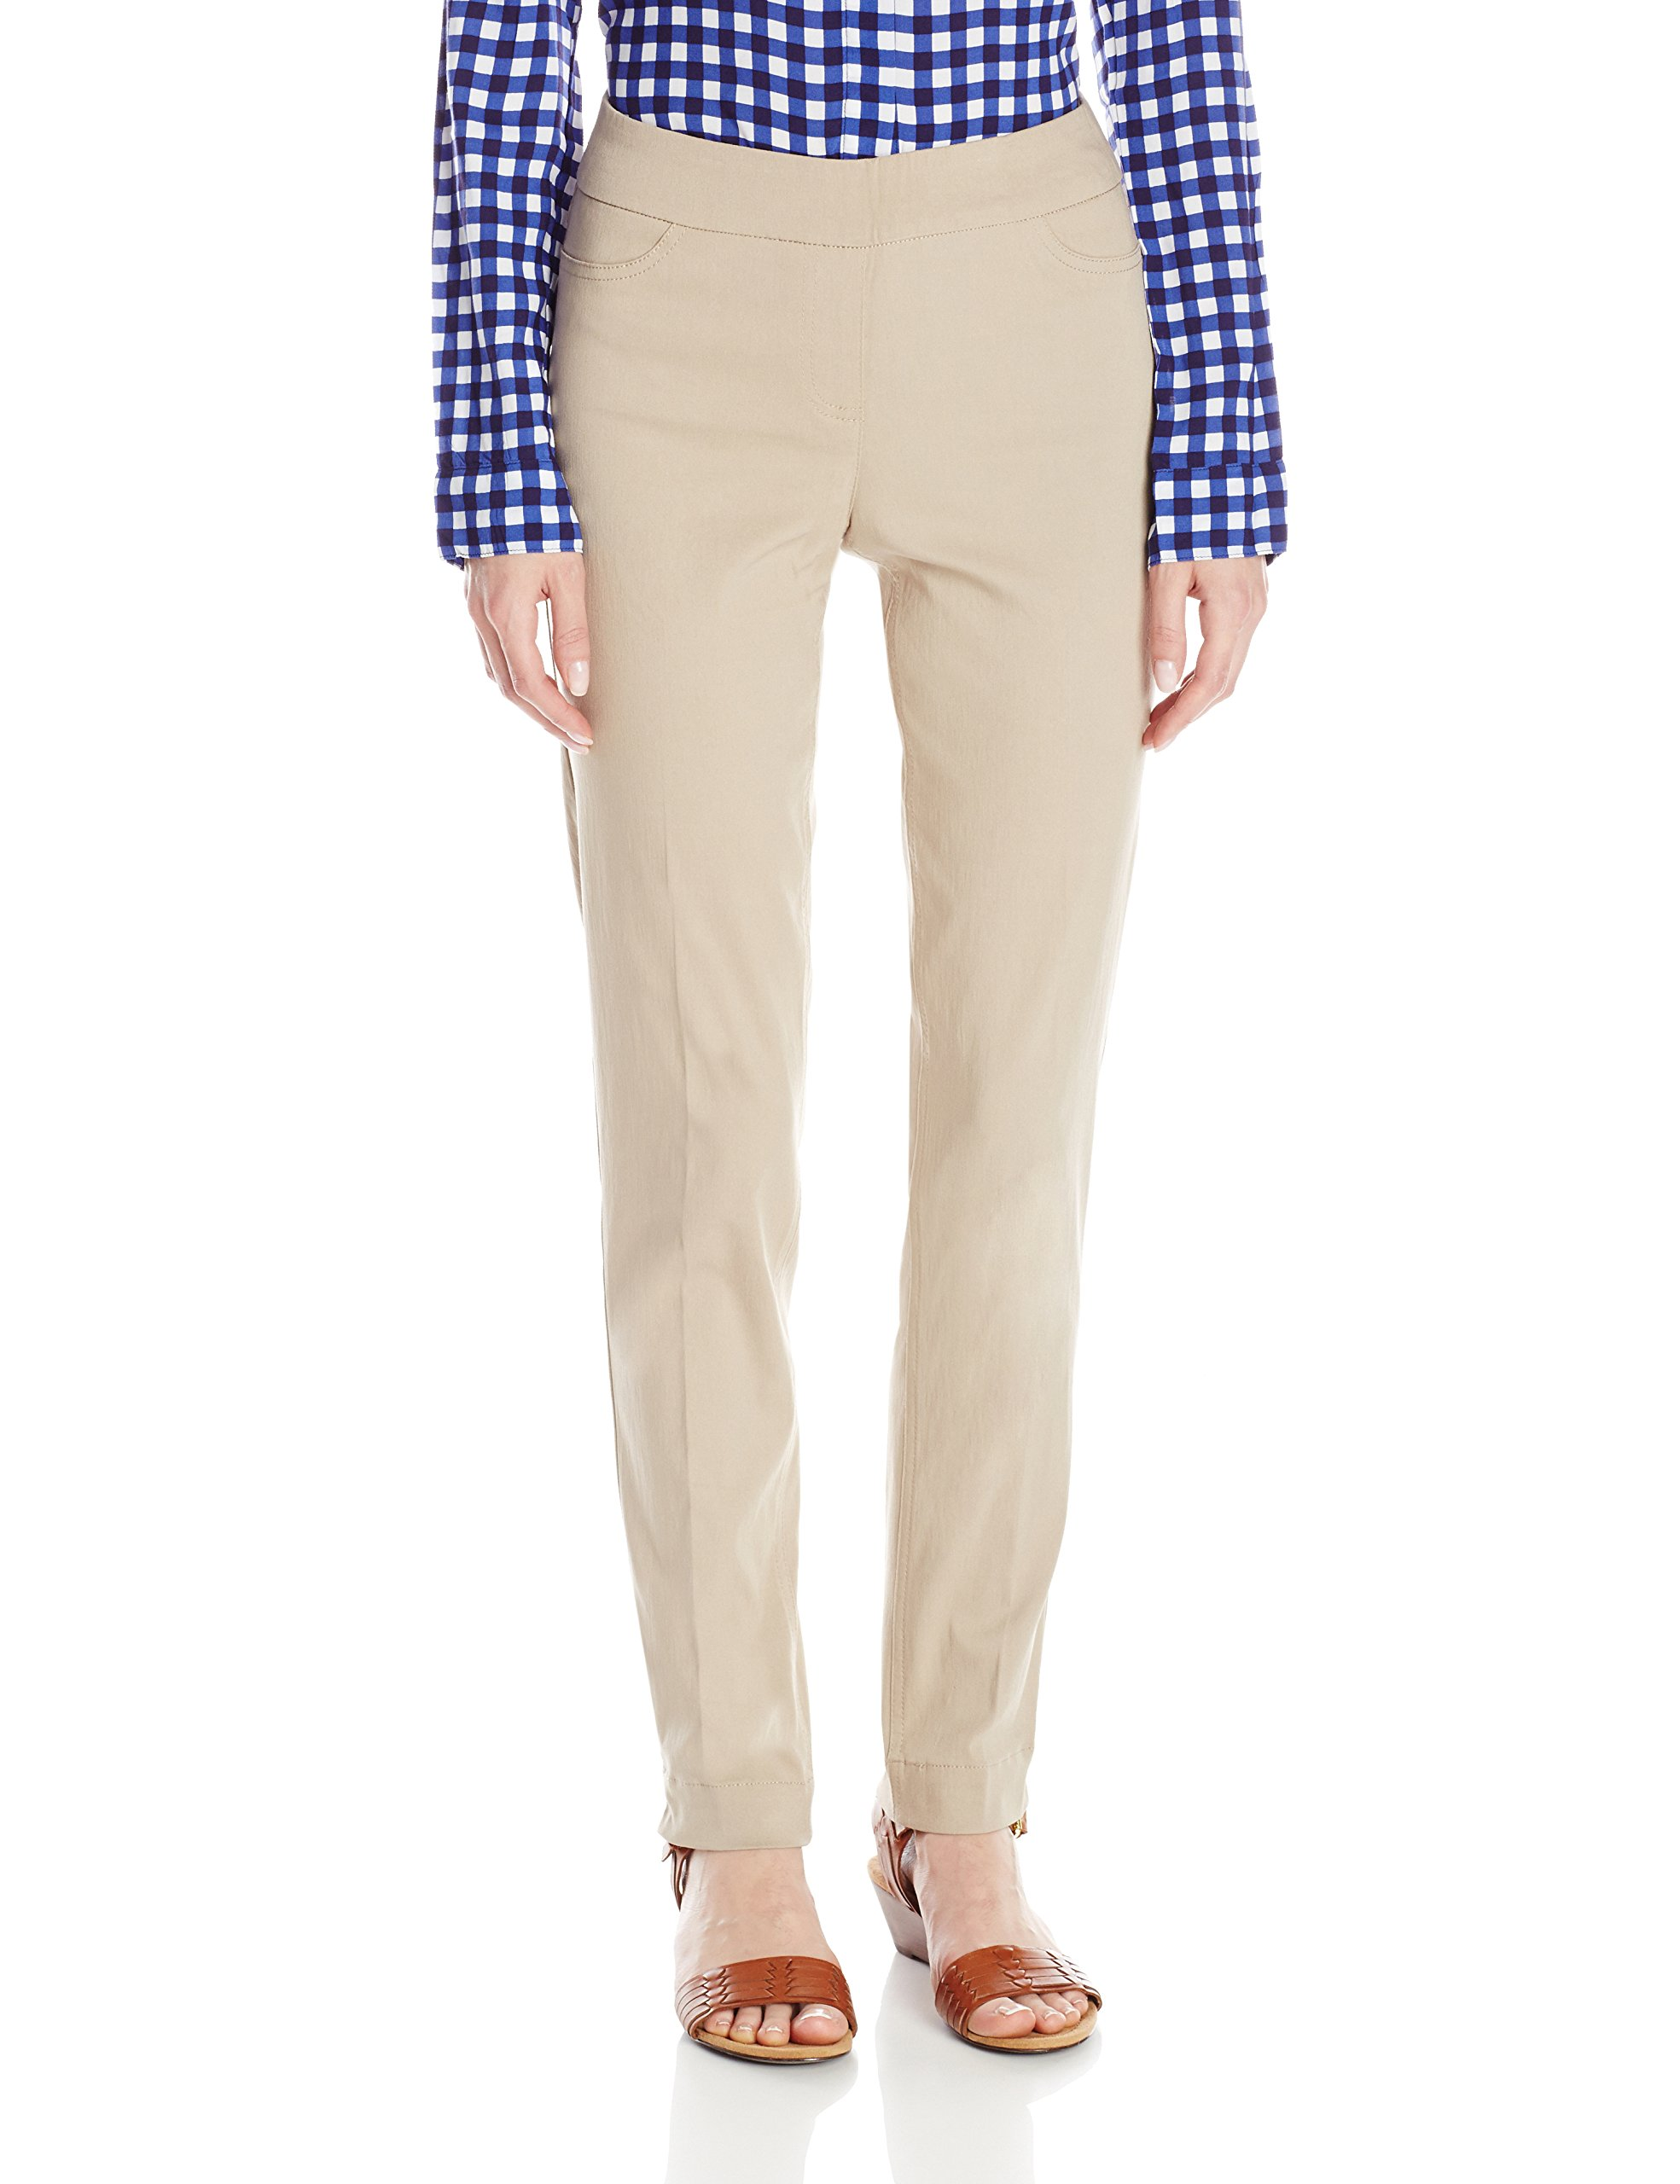 SLIM-SATION Women's Wide Band Pull-on Straight Leg Pant with Tummy Control, Stone 10